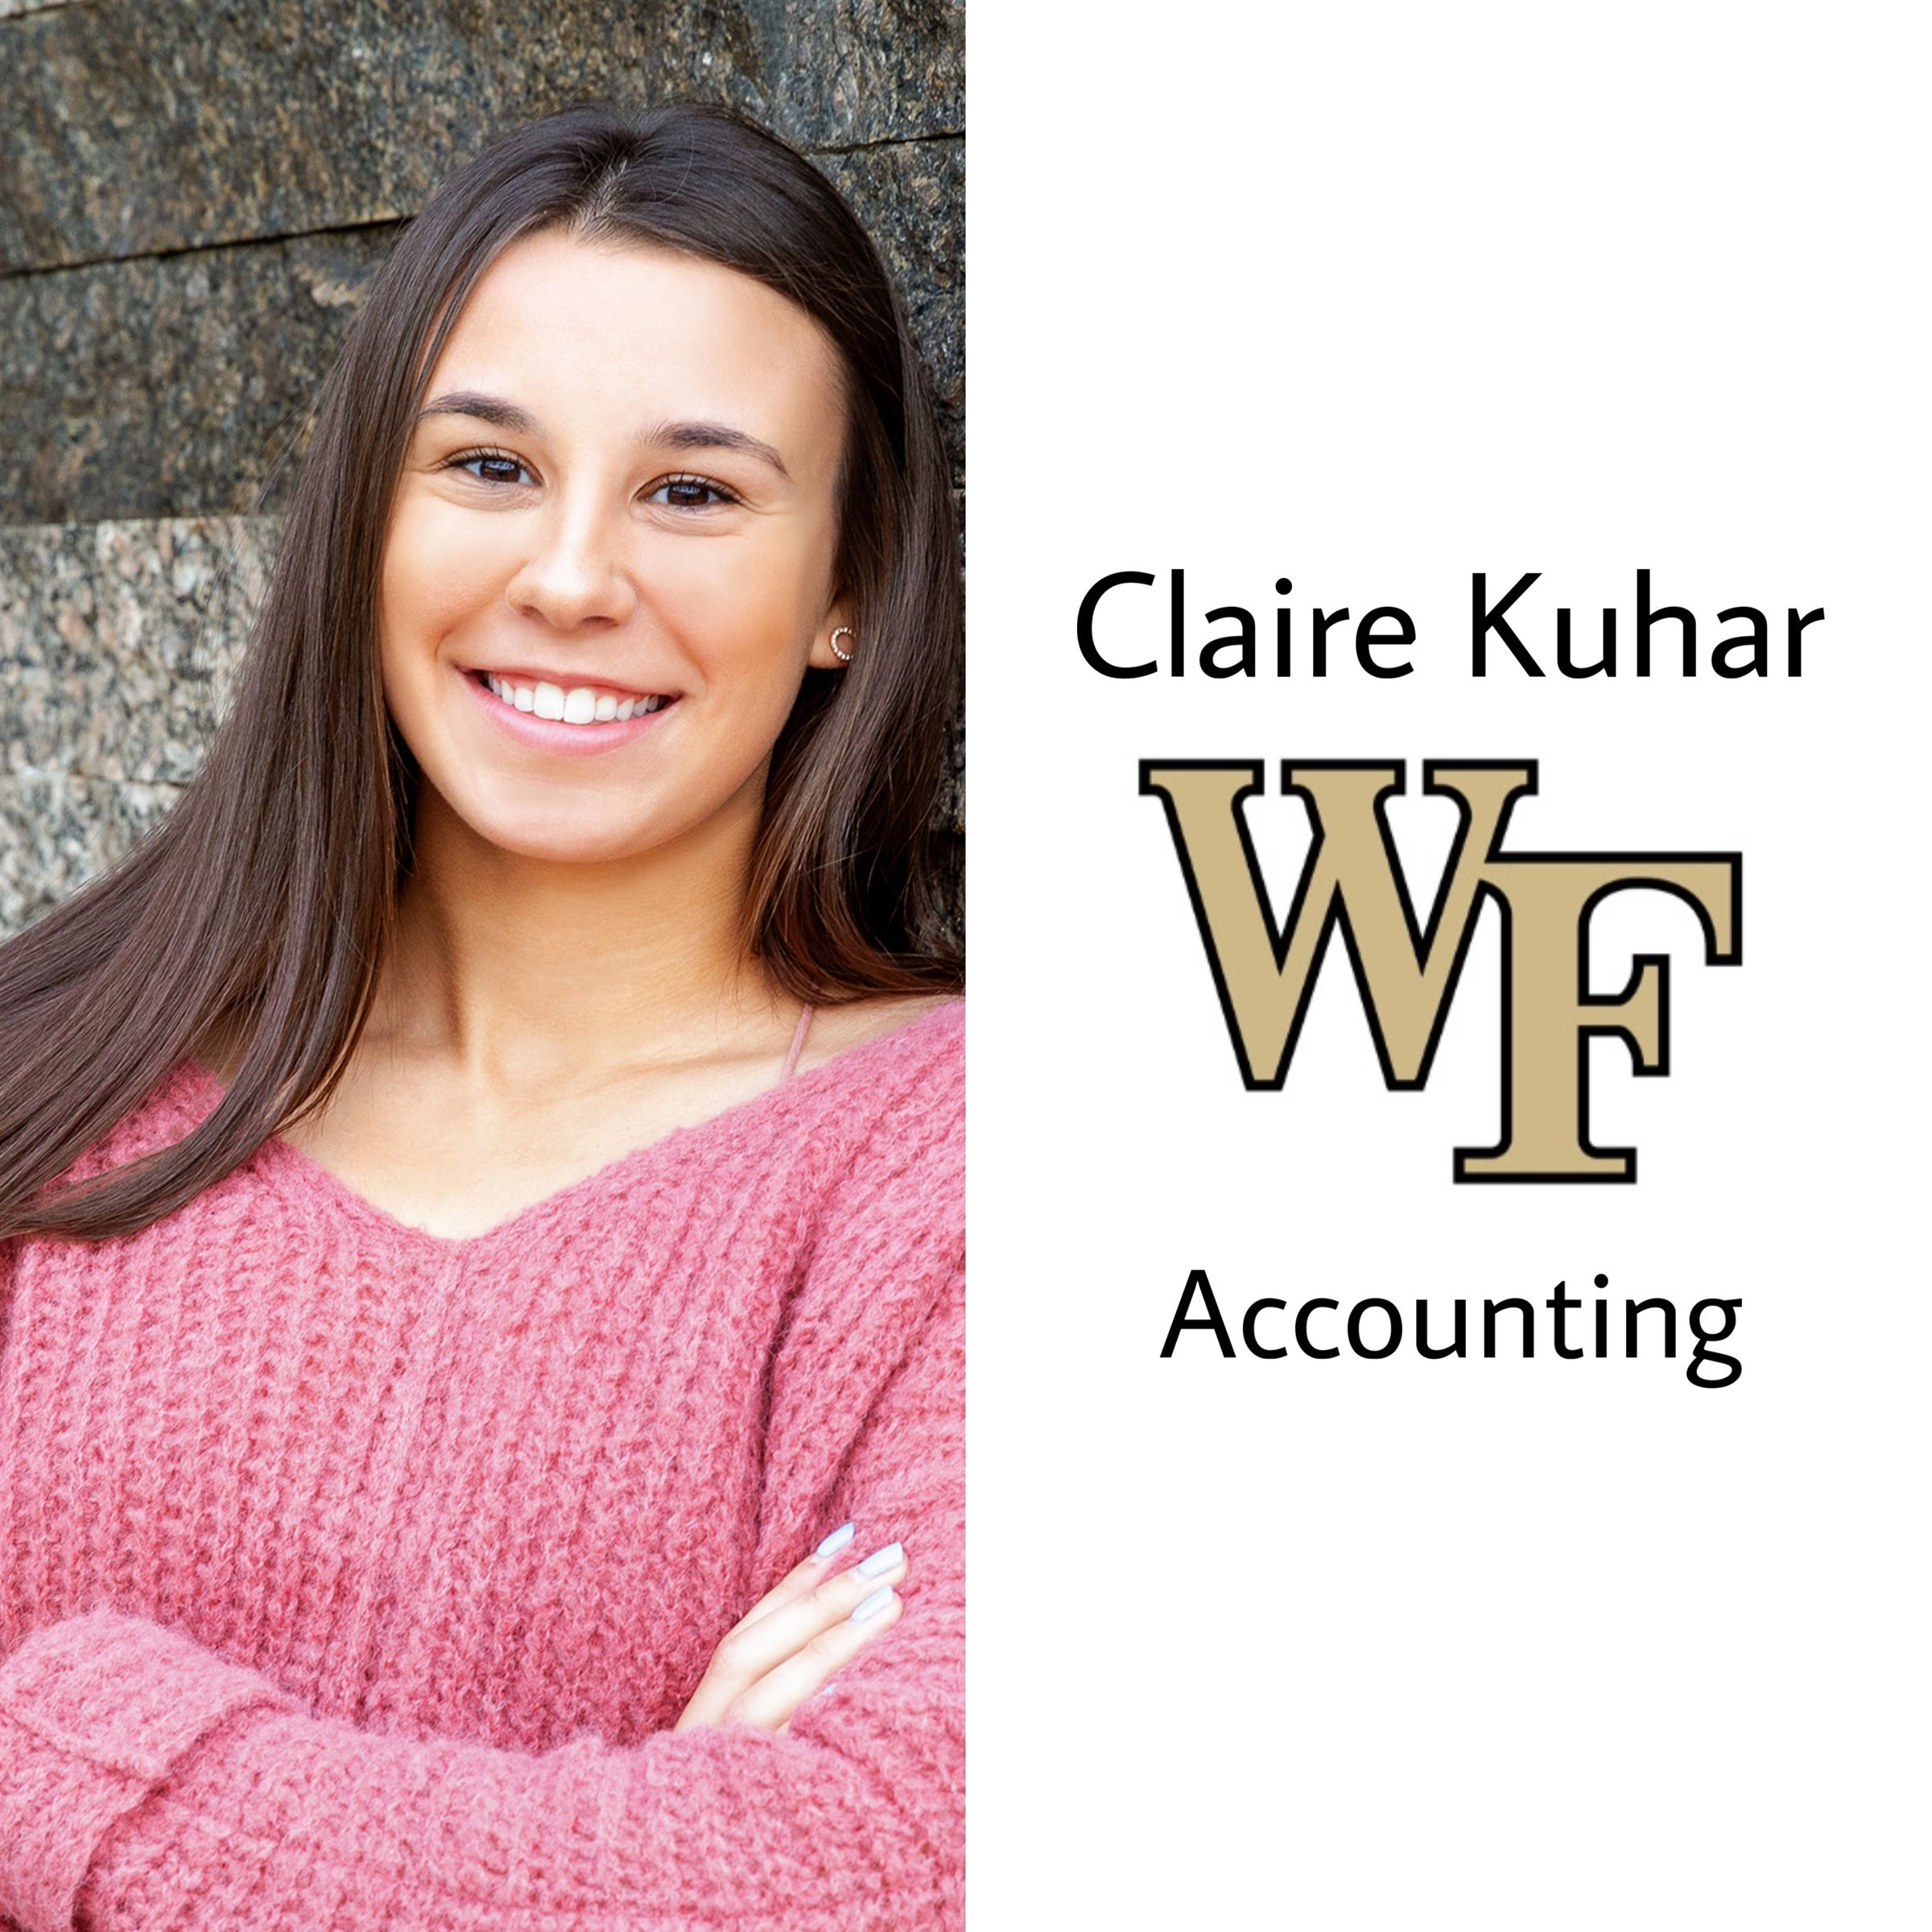 Claire is off to Wake Forest University next year!! She will be majoring in accounting. Congrats and go deacs!!